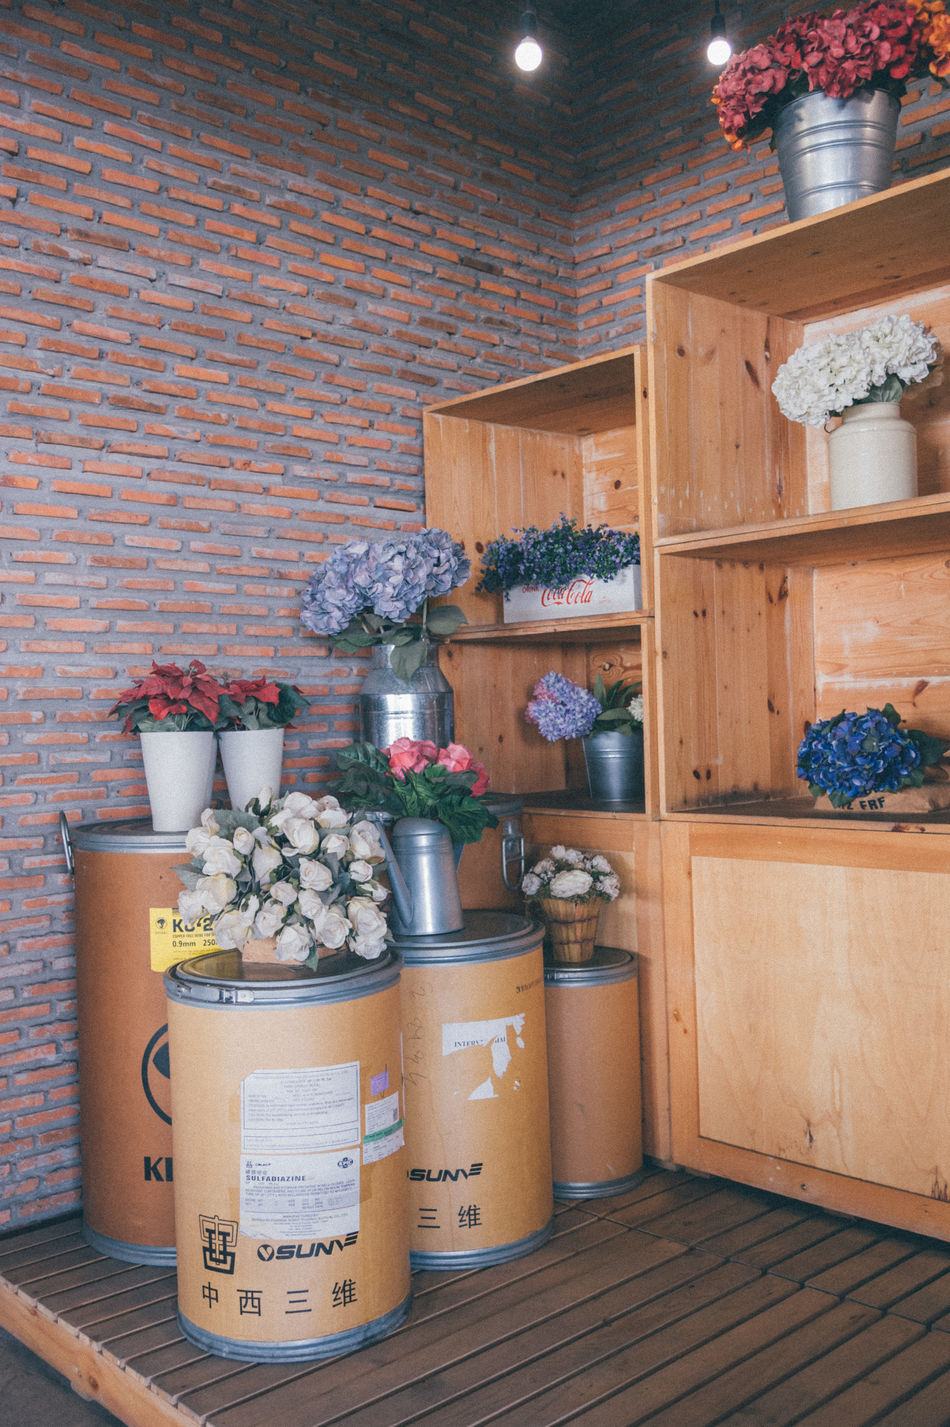 Adapted To The City Box - Container Cardboard Box Flower Flower Shop Indoors  Label Shop Storage Compartment Store Vase Vintage Wood Lieblingsteil Lieblingsteil